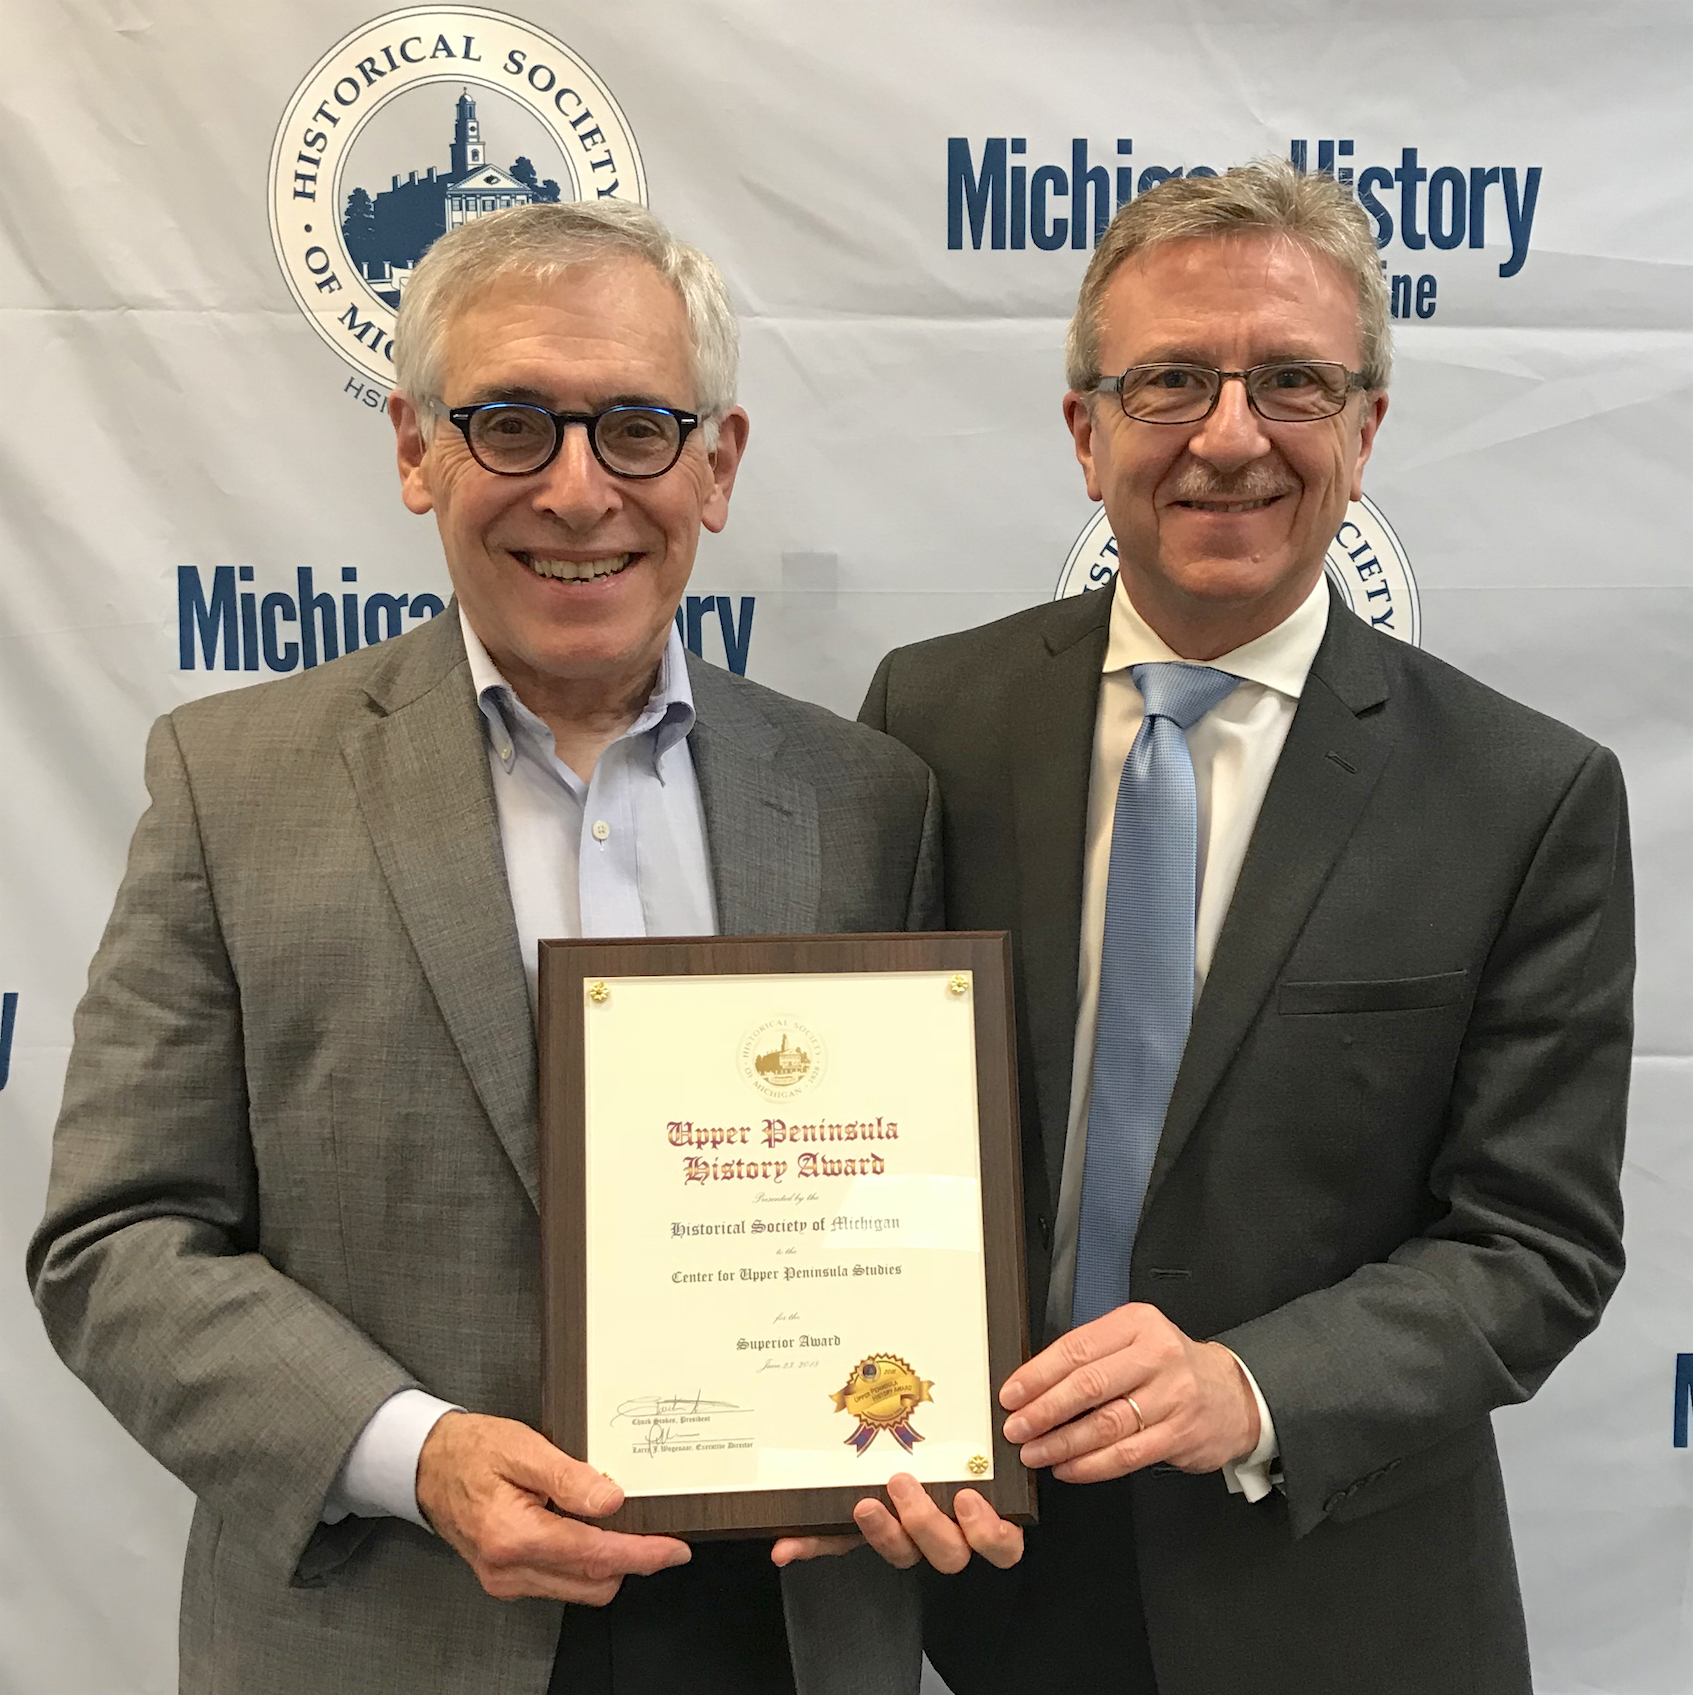 Magnaghi (left) accepting the award from Historical Society of Michigan Trustee Kendall Wingrove